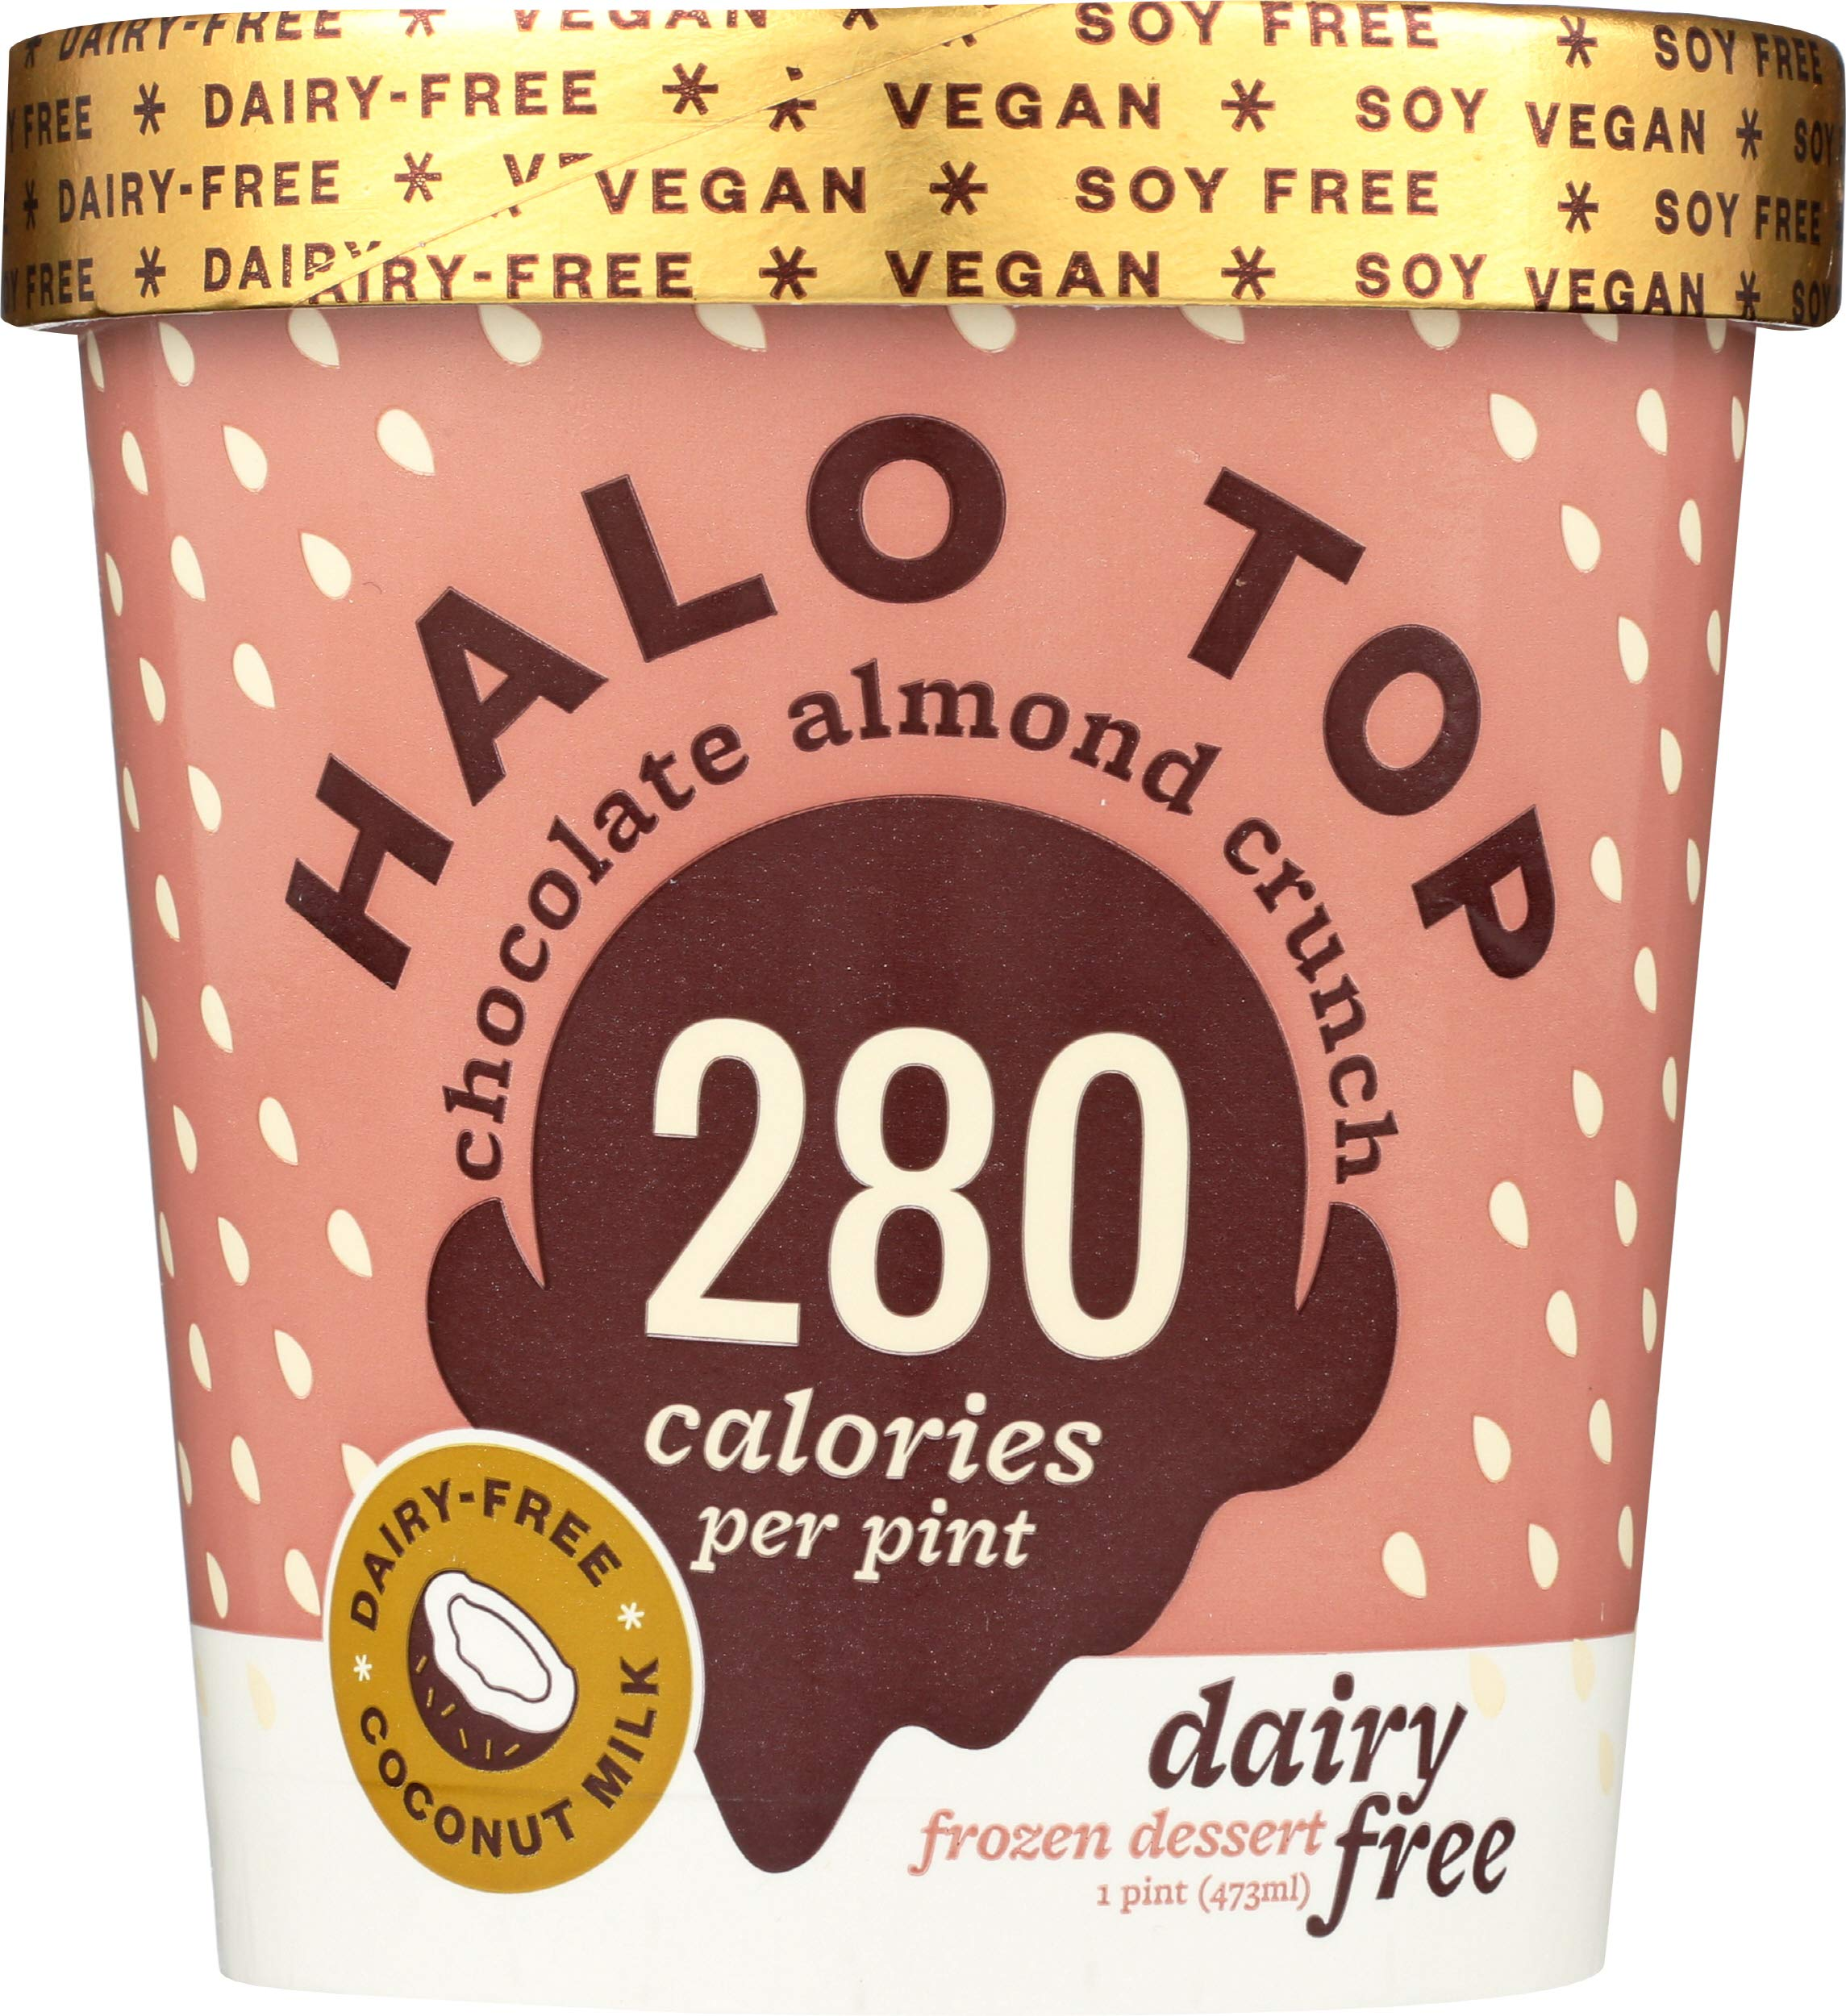 Halo Top Chocolate Almond Crunch Dairy Free Frozen Dessert,, 16 oz (Pack of 8)